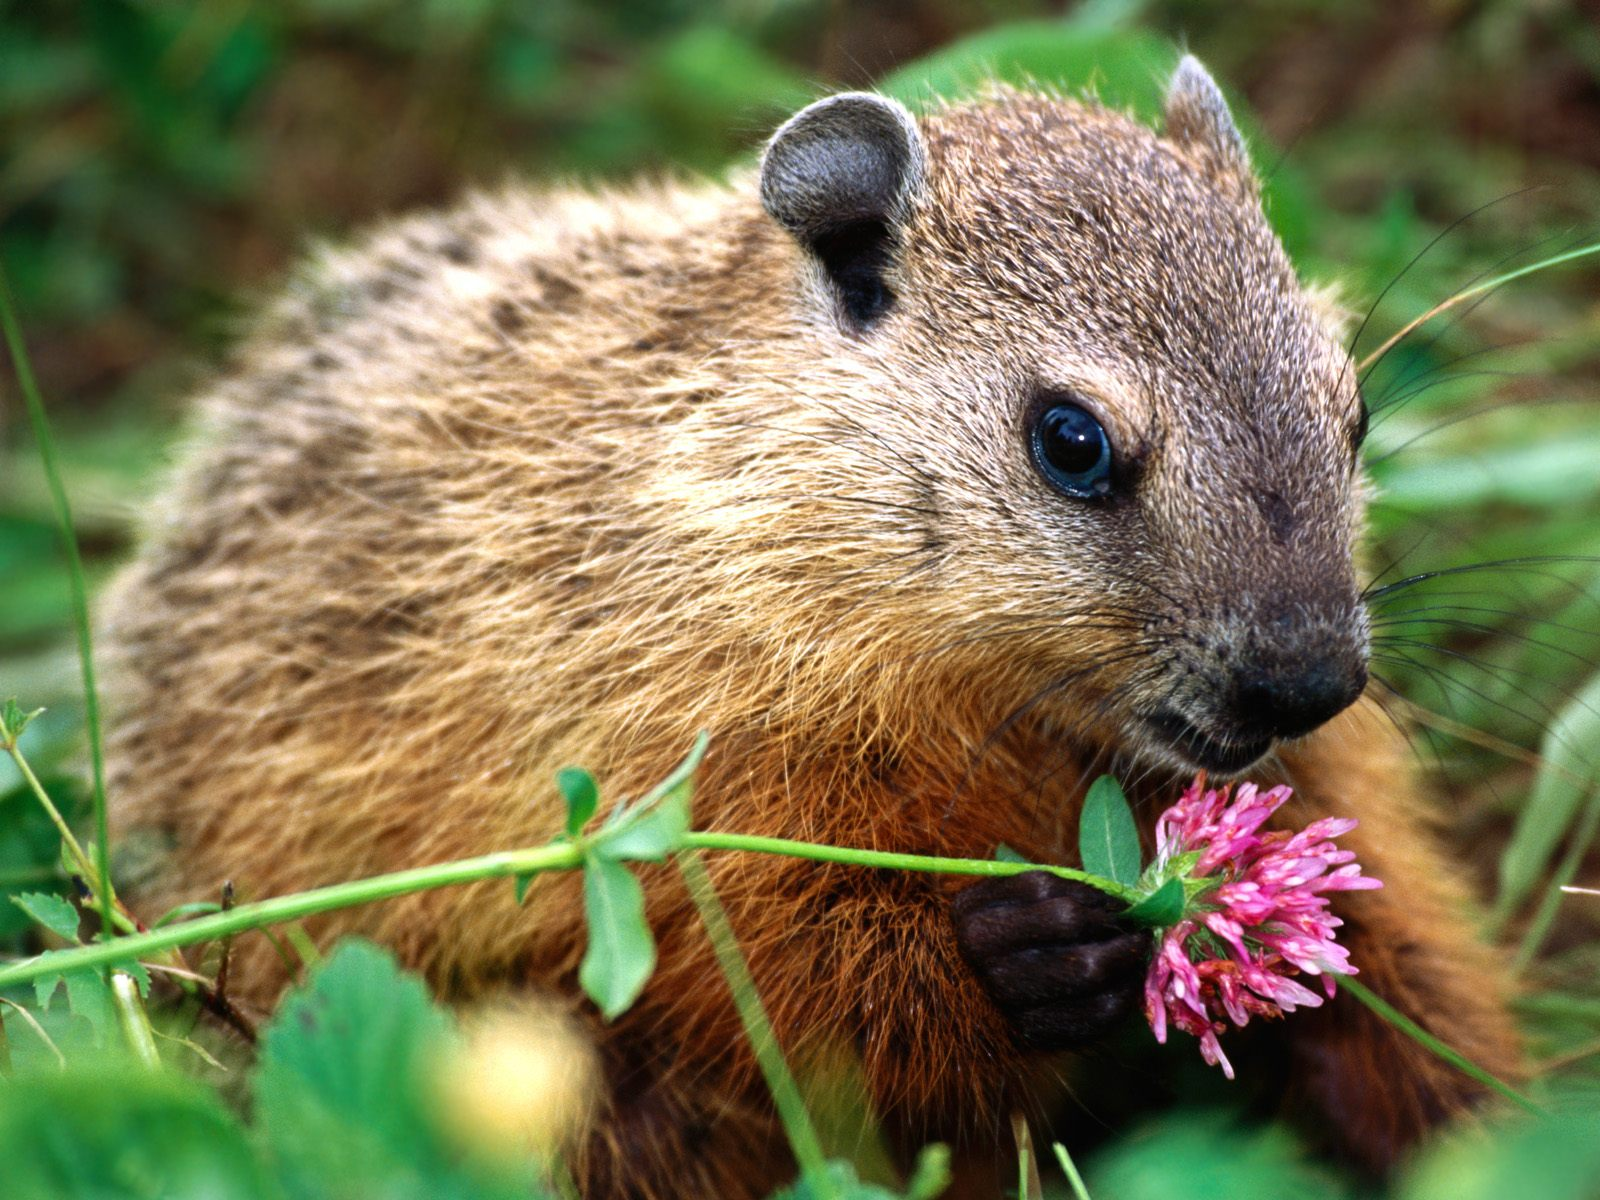 woodchucks Printable groundhog or woodchuck coloring book pages for children to print and color.